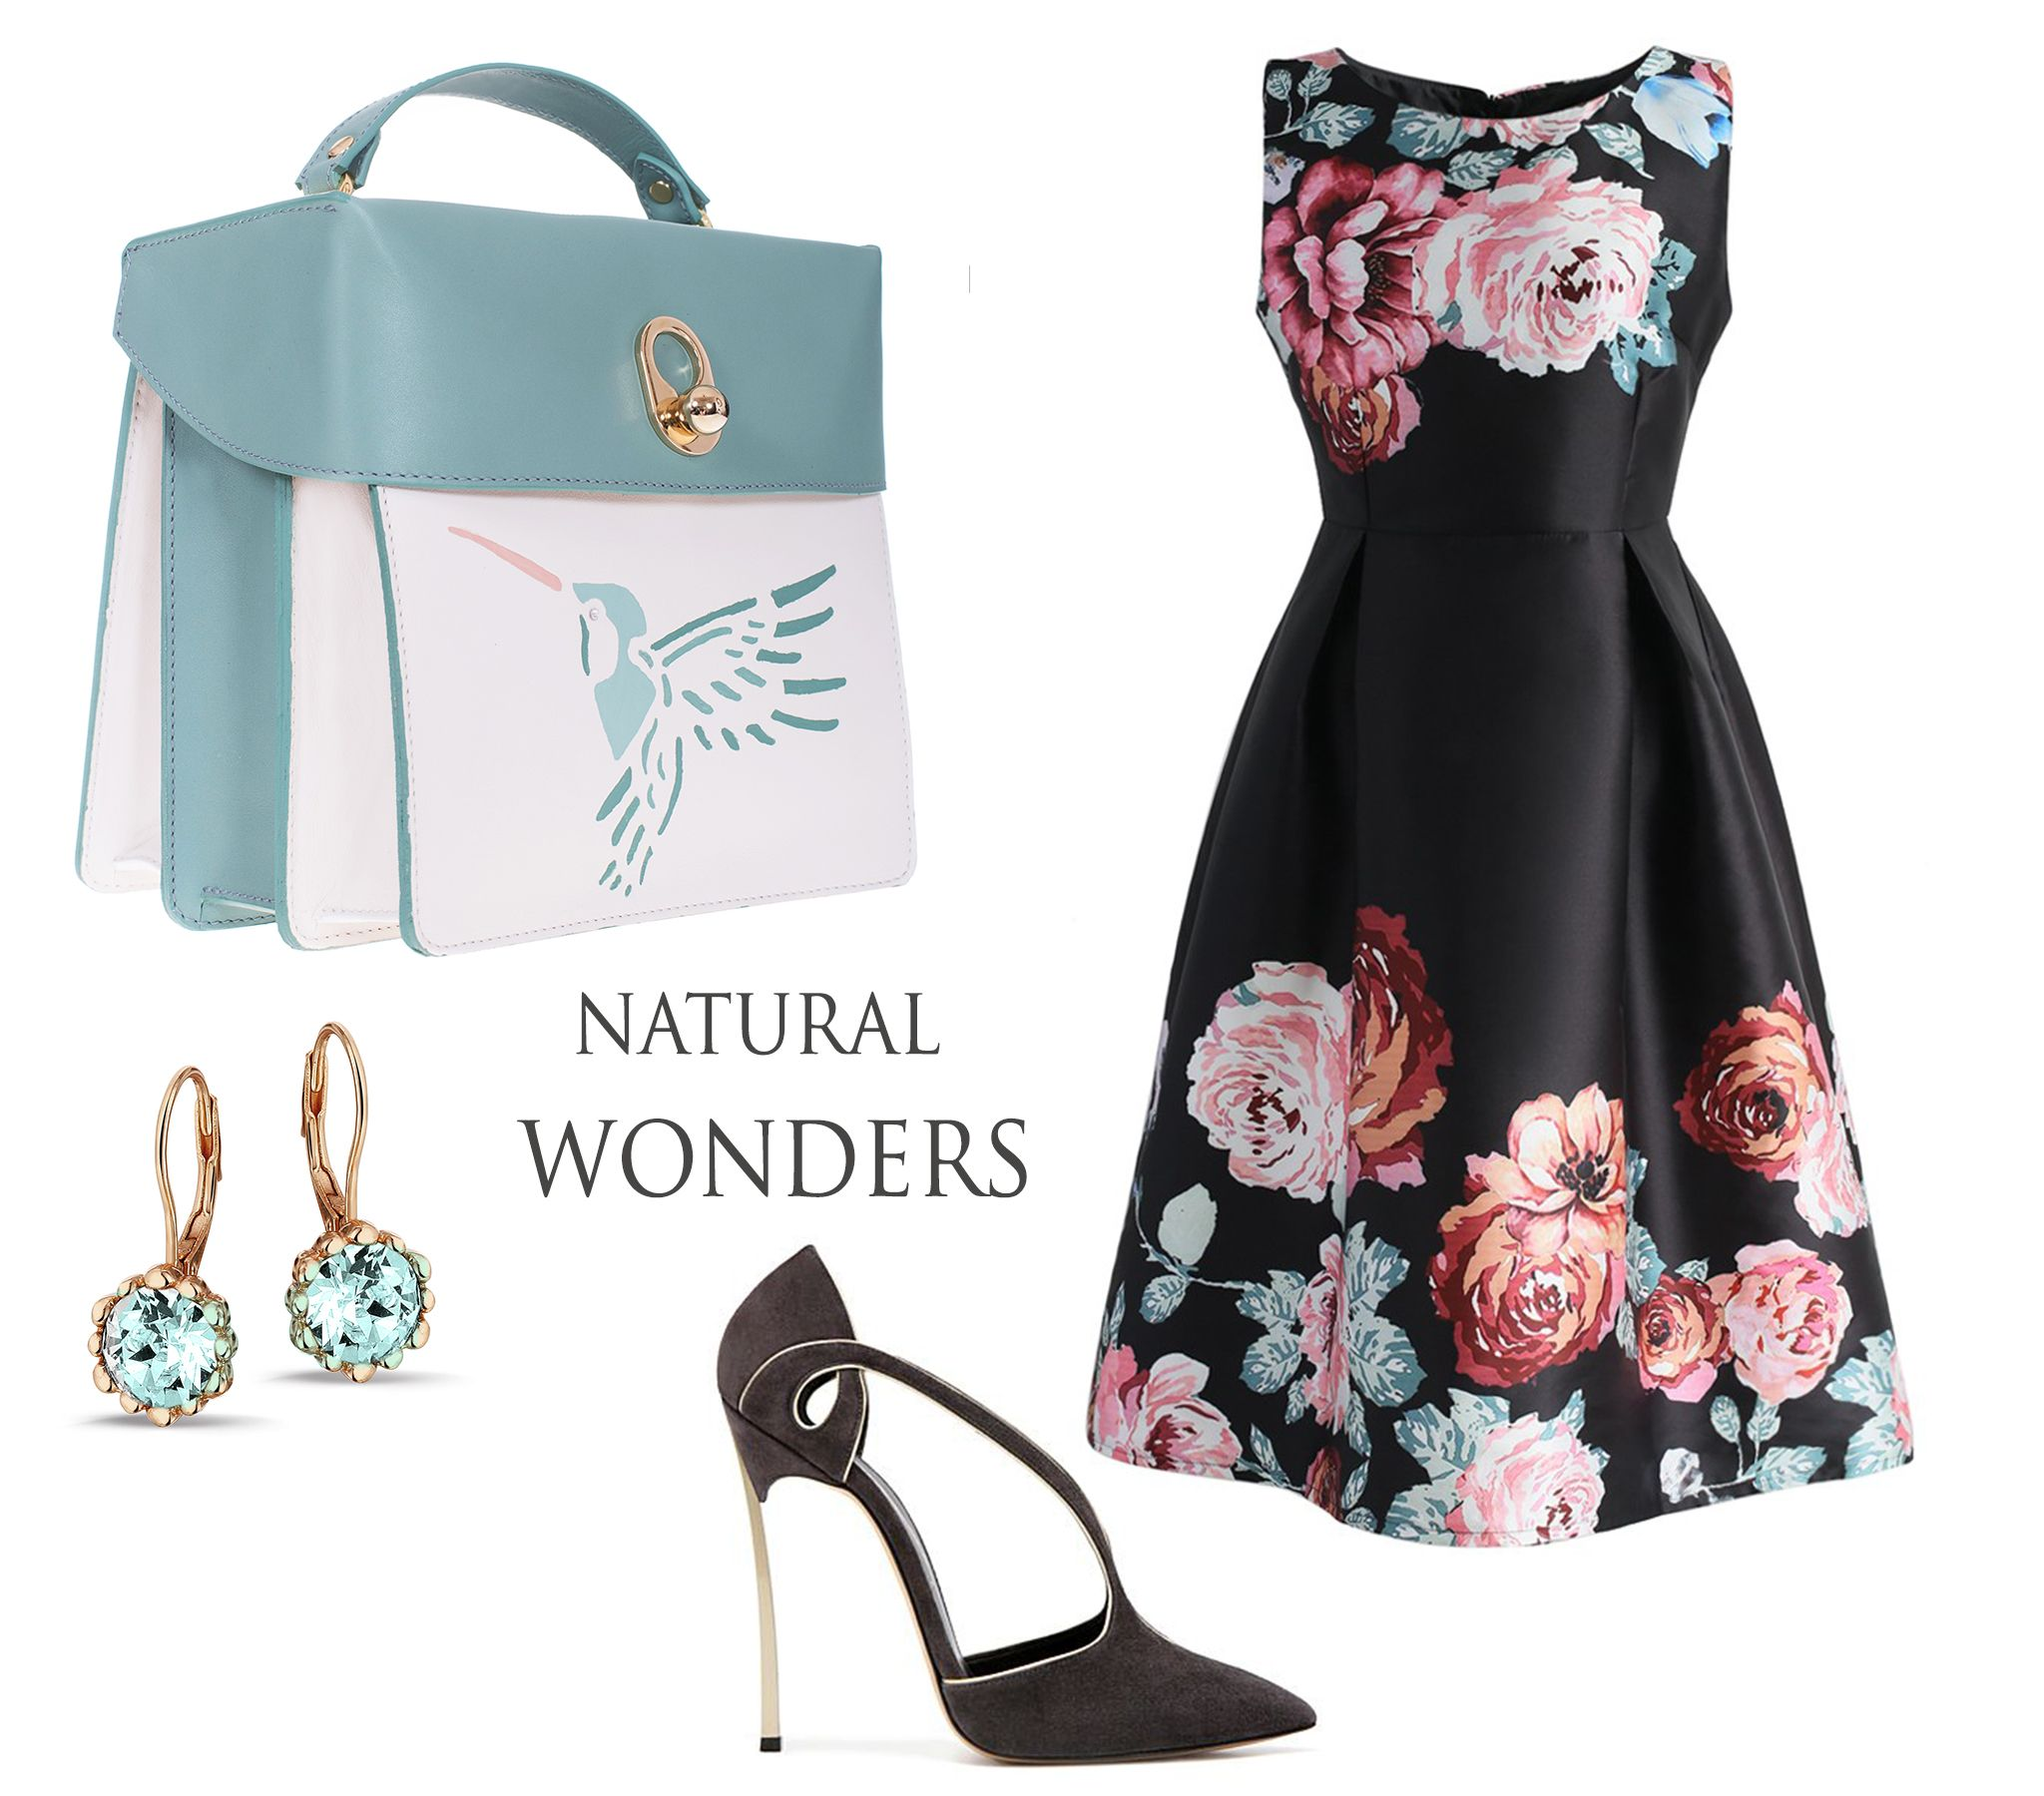 The new Amanda leather bags impress with their delicate manual painting which depicts the beauty of the hummingbird. Mix them with elegant floral dresses and you will definitely glow with femininity.